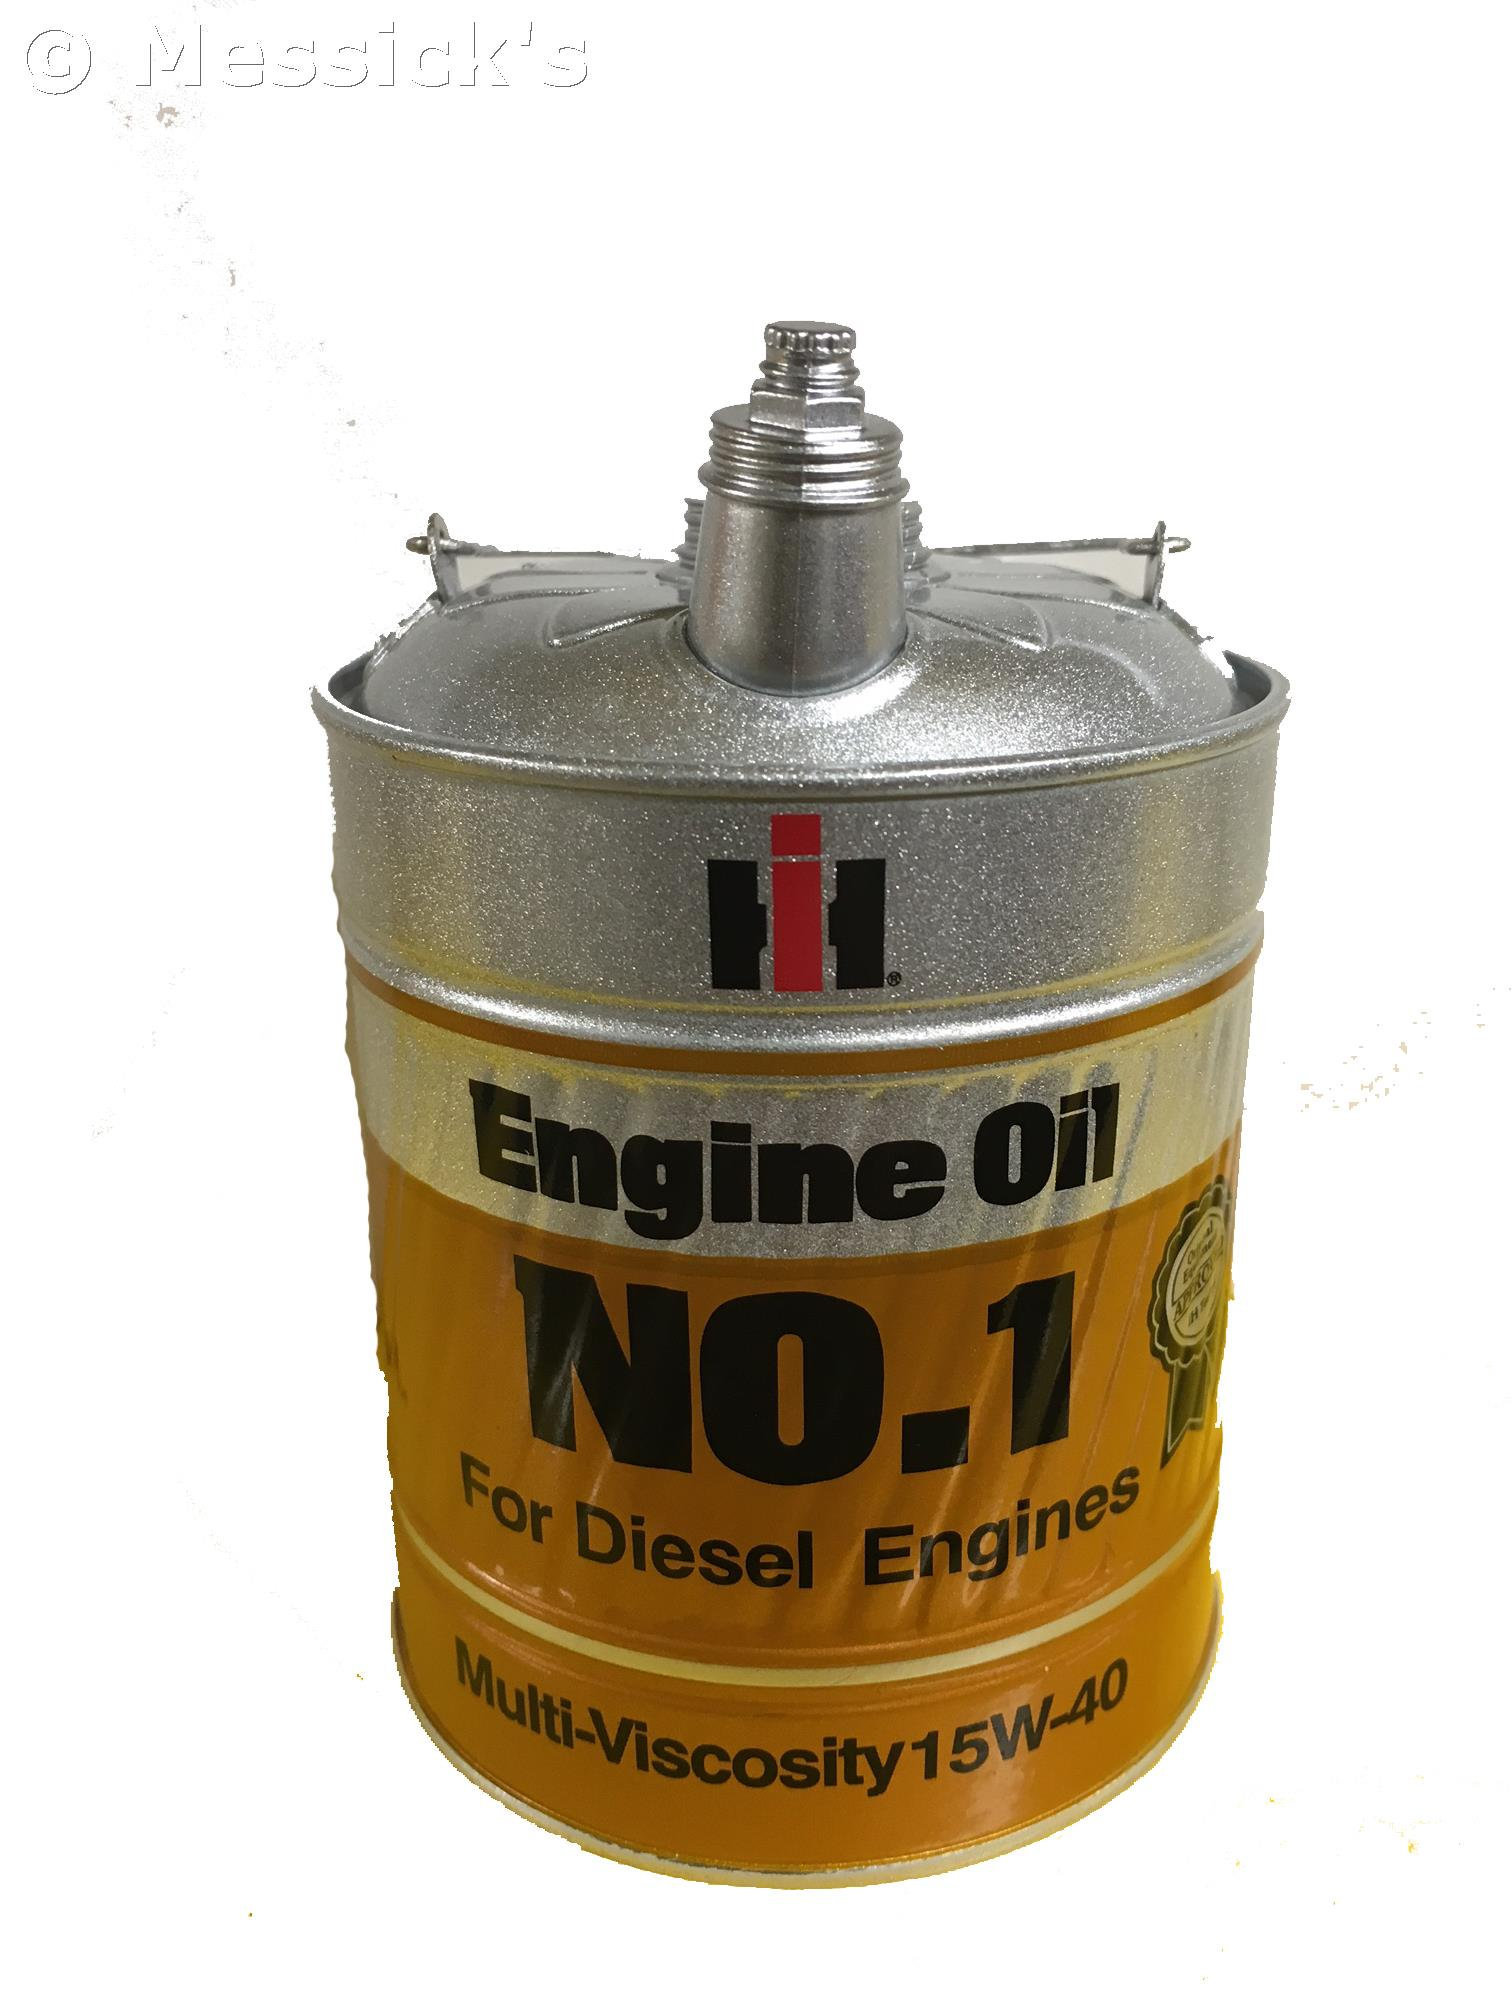 Case ih new holland case ih engine oil drum coin bank for Motor oil by the drum